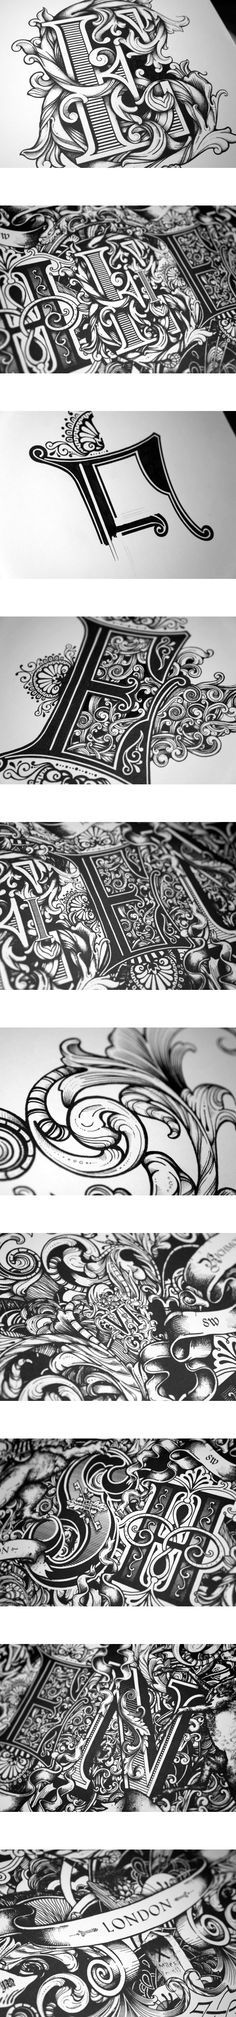 Sheen by Greg Coulton, via Behance #calligraphy #typography